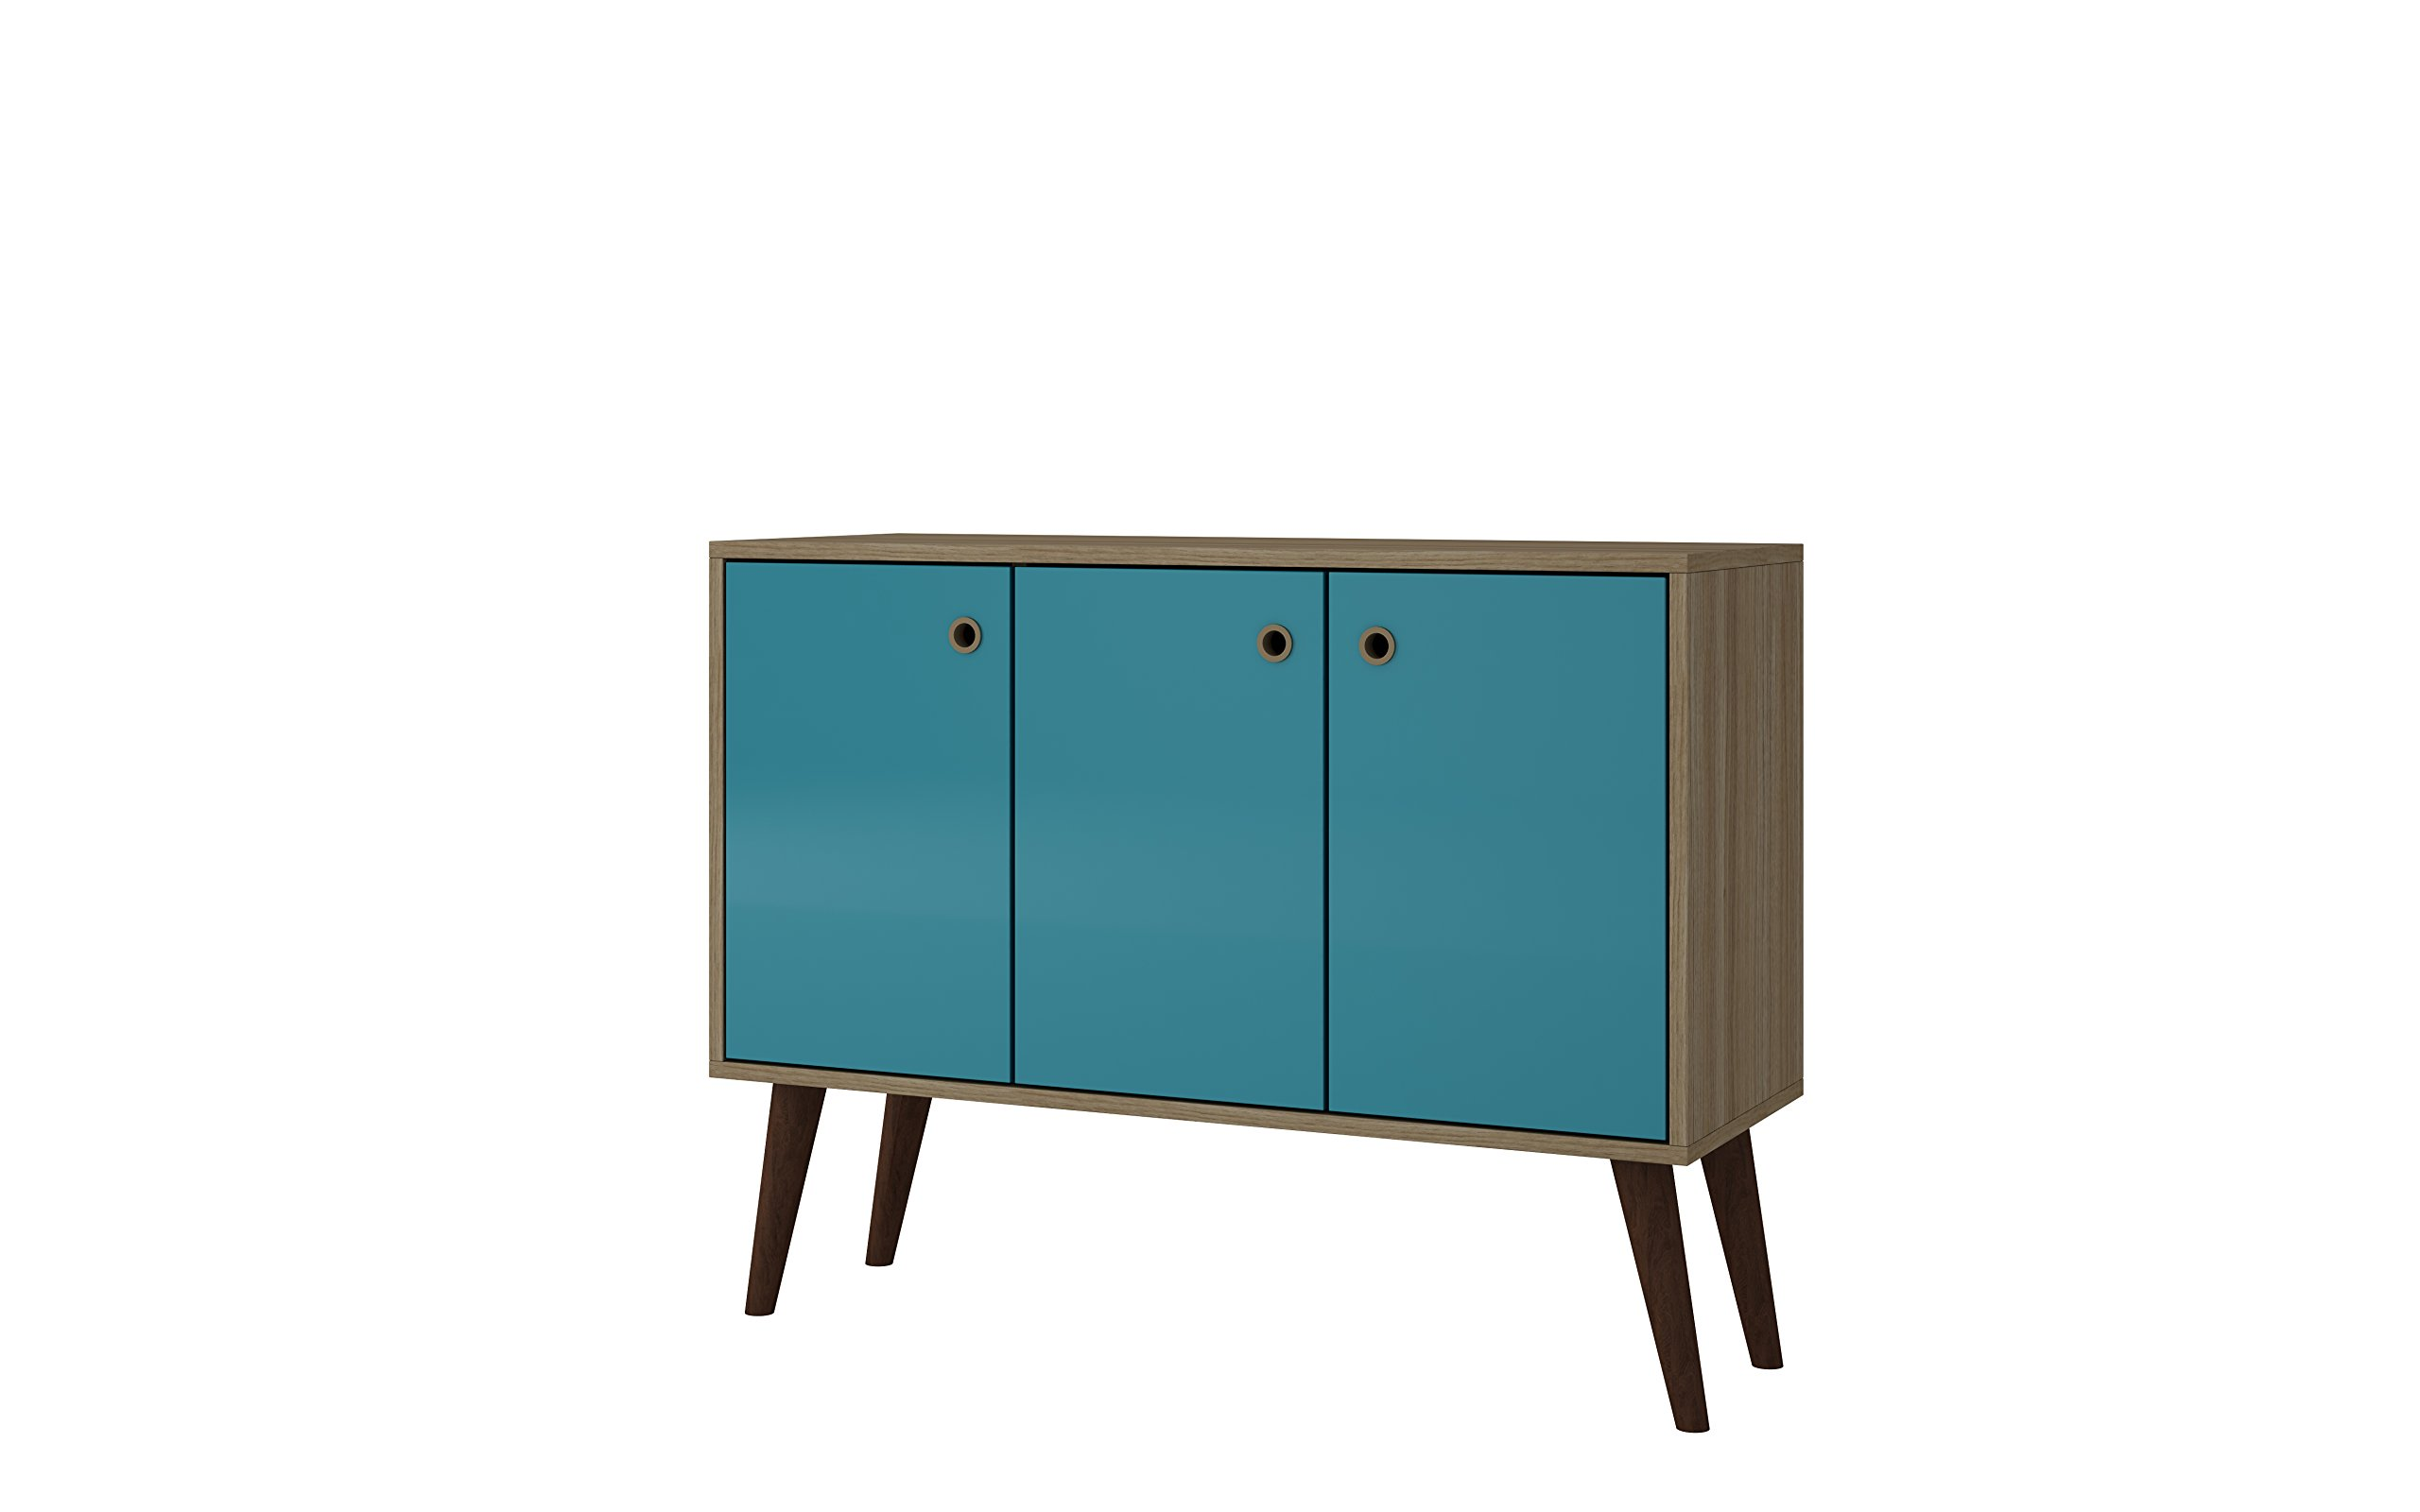 Manhattan Comfort Bromma Collection Mid Century Modern Square Buffet Stand Table With Two Cabinets and Splayed Legs, Wood/Teal